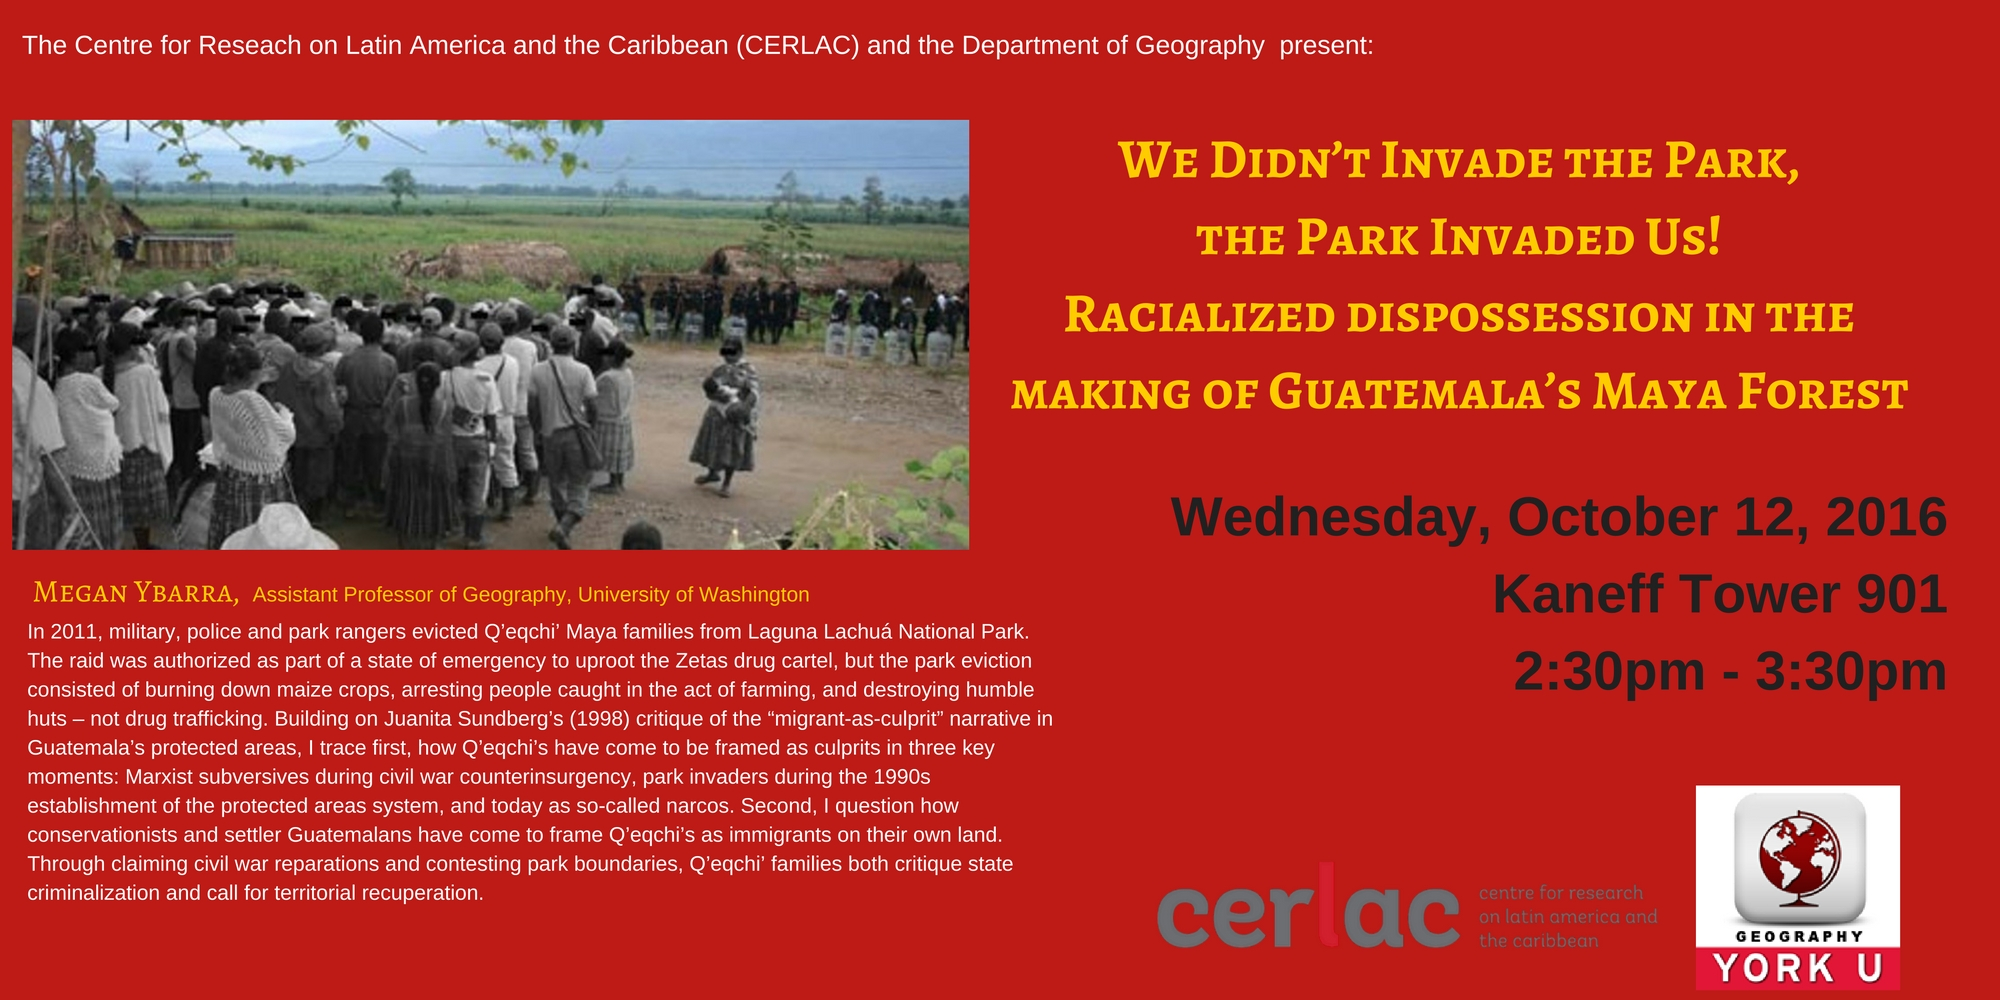 We Didn't Invade the Park, the Park Invaded Us! - Racialized Dispossession on the Making of Guatemala's Maya Forest @ Kaneff Tower Room 901 (Ninth Floor)